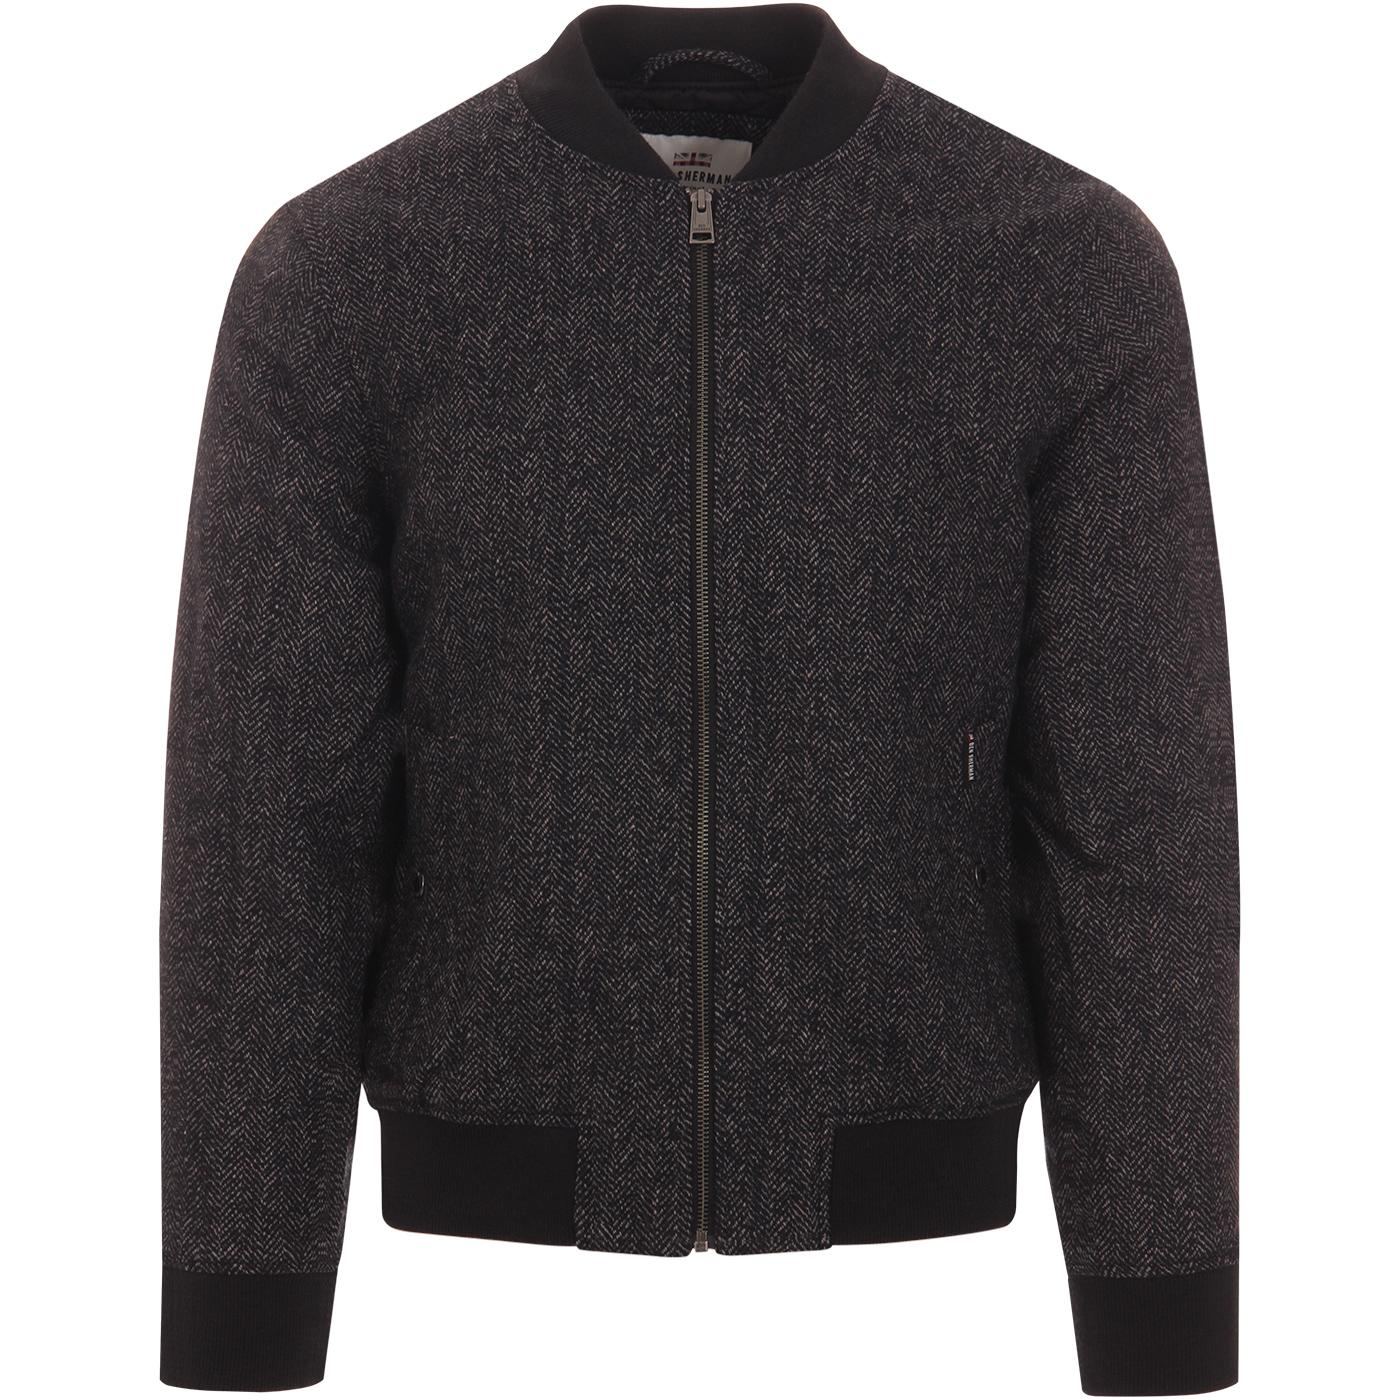 BEN SHERMAN Mod Herringbone Bomber Jacket (Coffee)